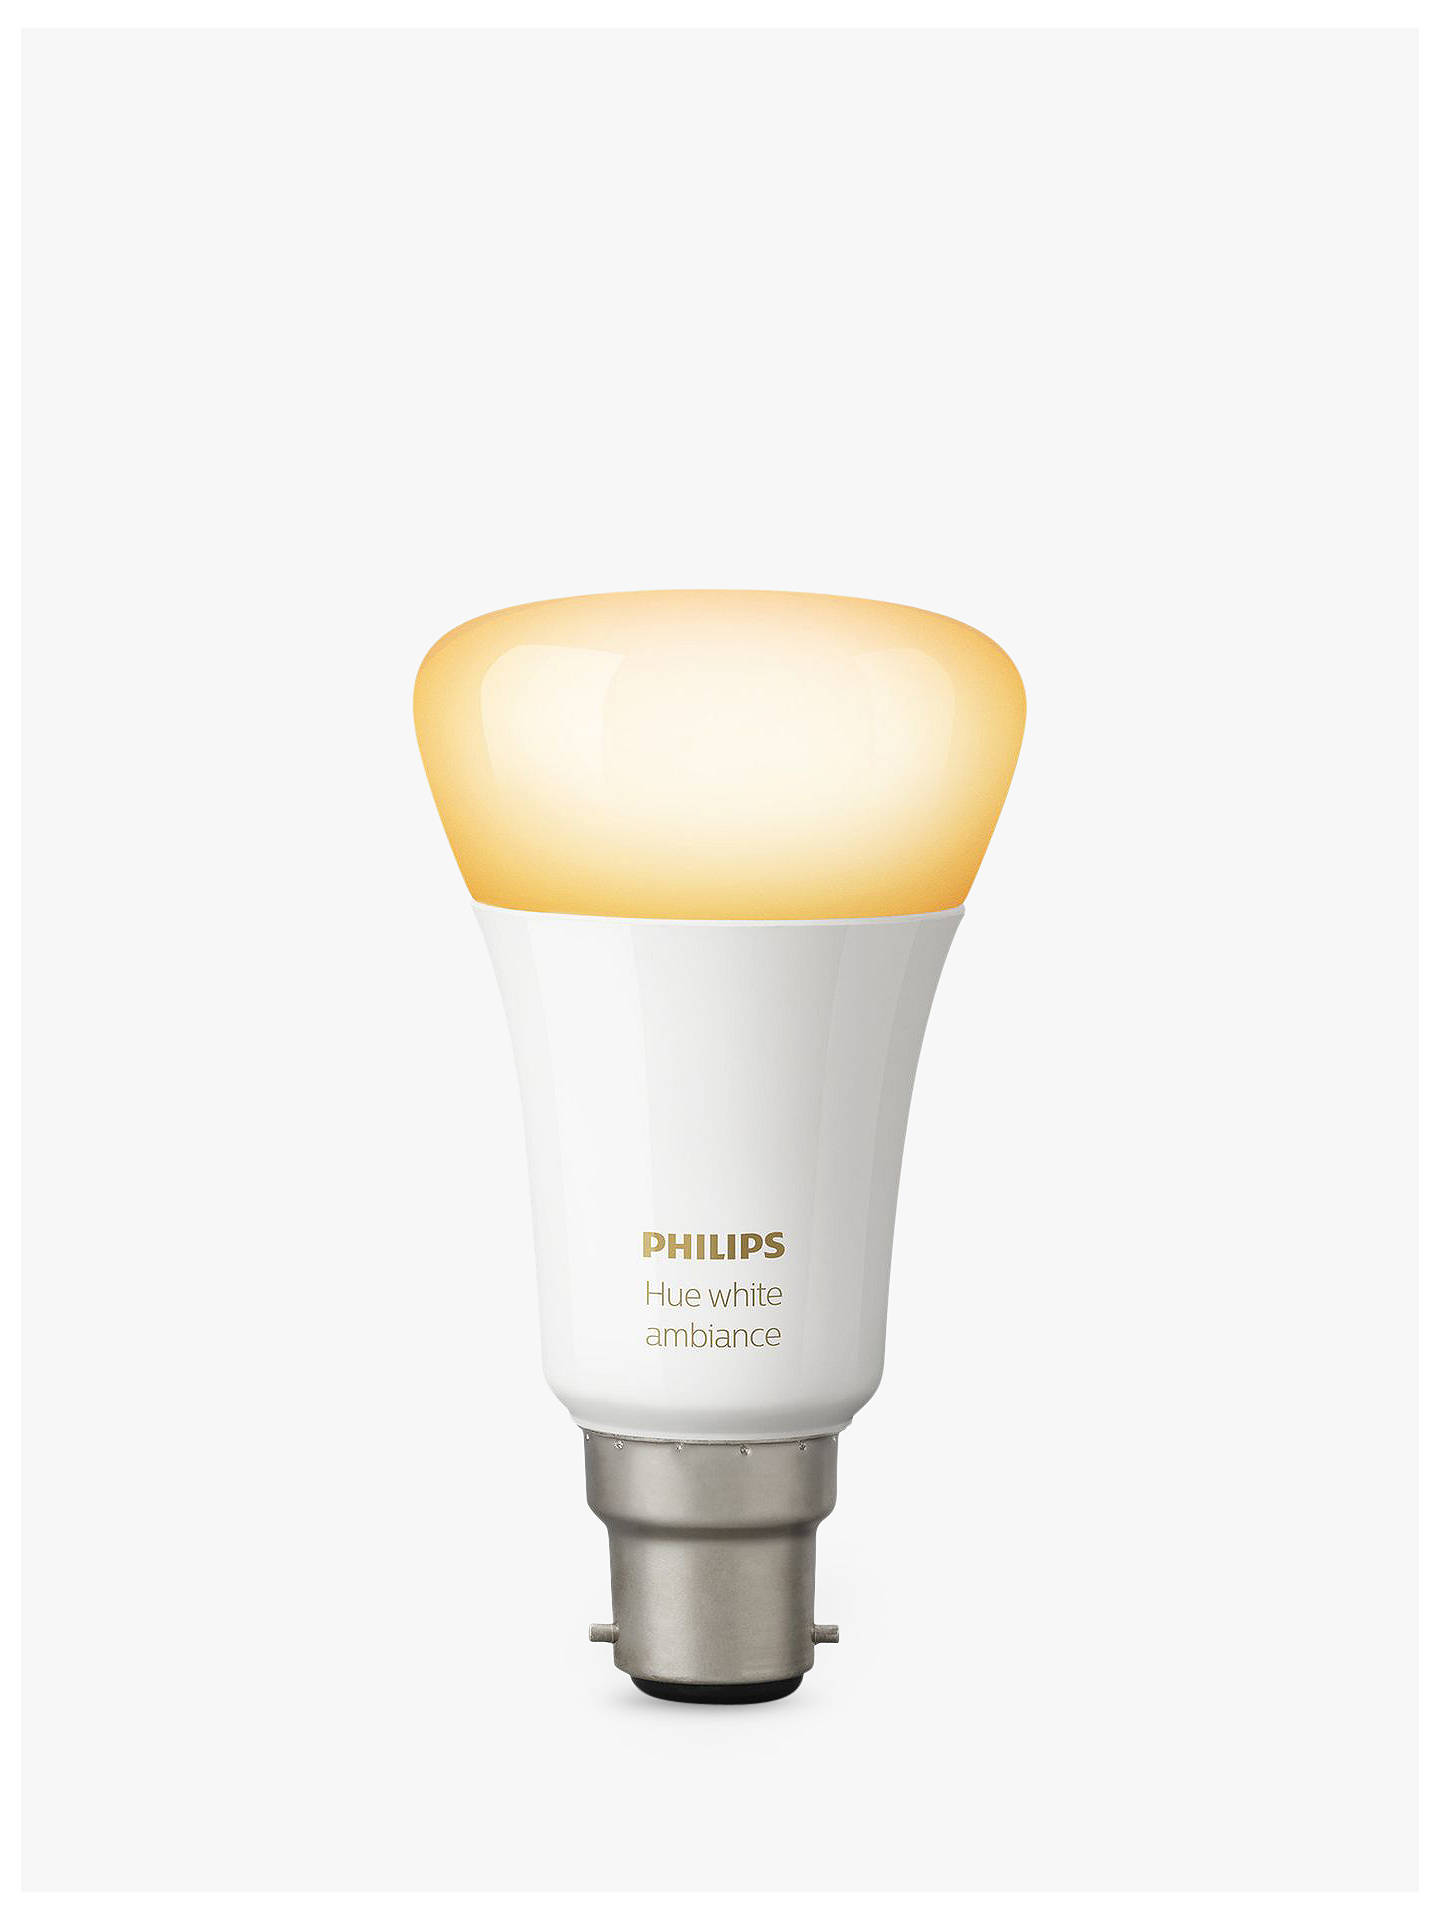 c32a6f47503 Buy Philips Hue White Ambiance Wireless Lighting LED Light Bulb